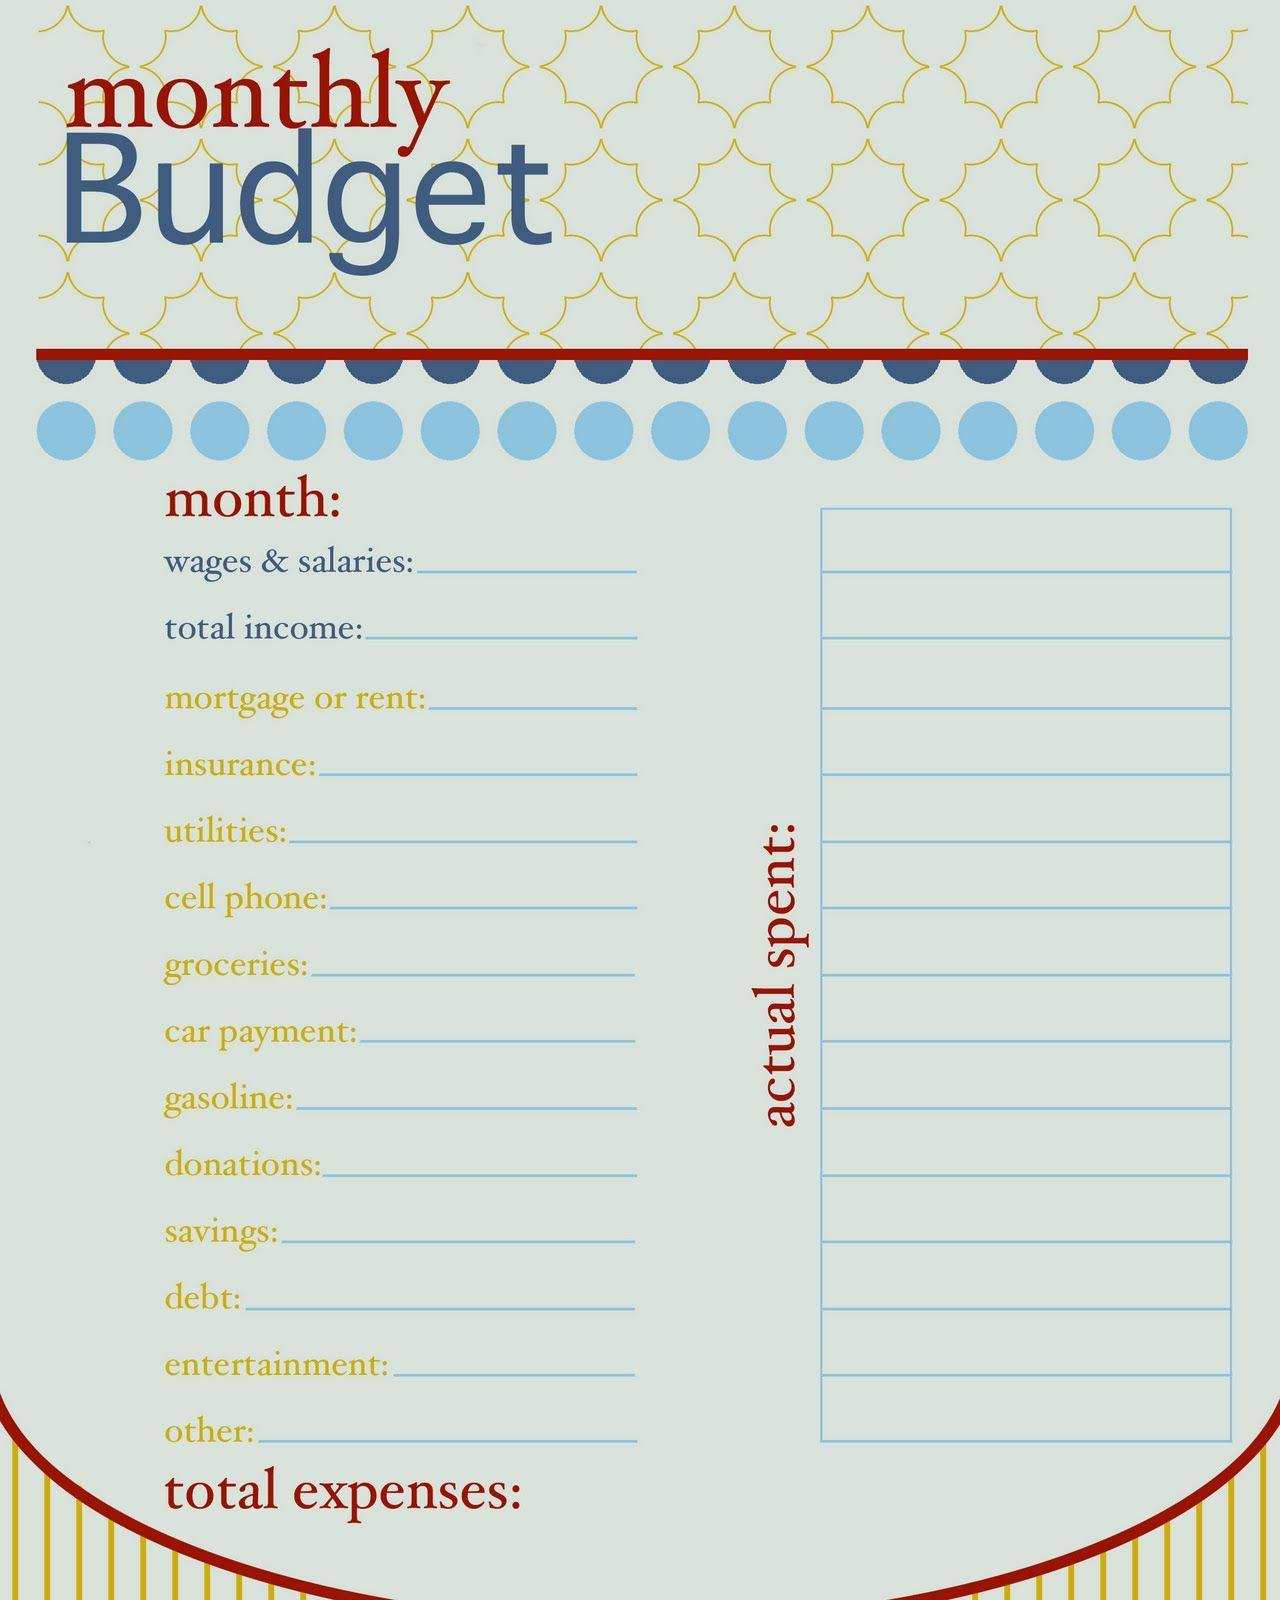 Worksheets Free Online Budget Worksheet how to live on a budget monthly budgeting and free printable explore sheet more